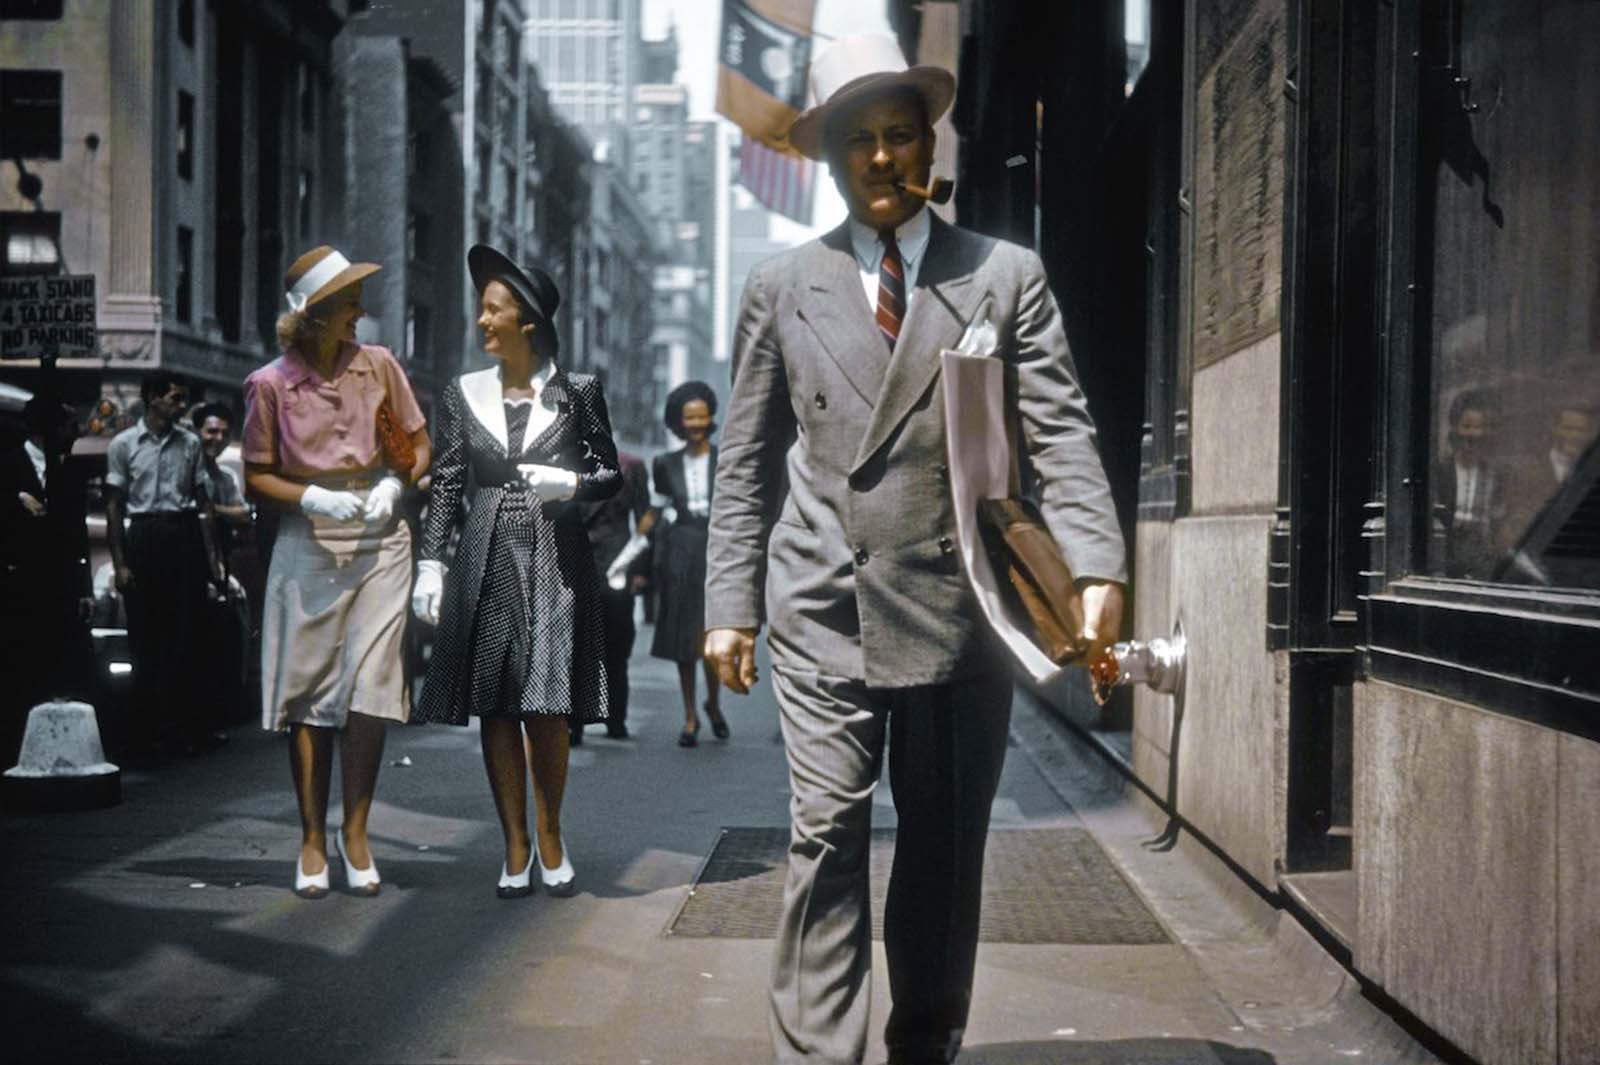 A man walks down Madison Avenue on a clear, warm day. Behind him, three women are wearing white gloves.